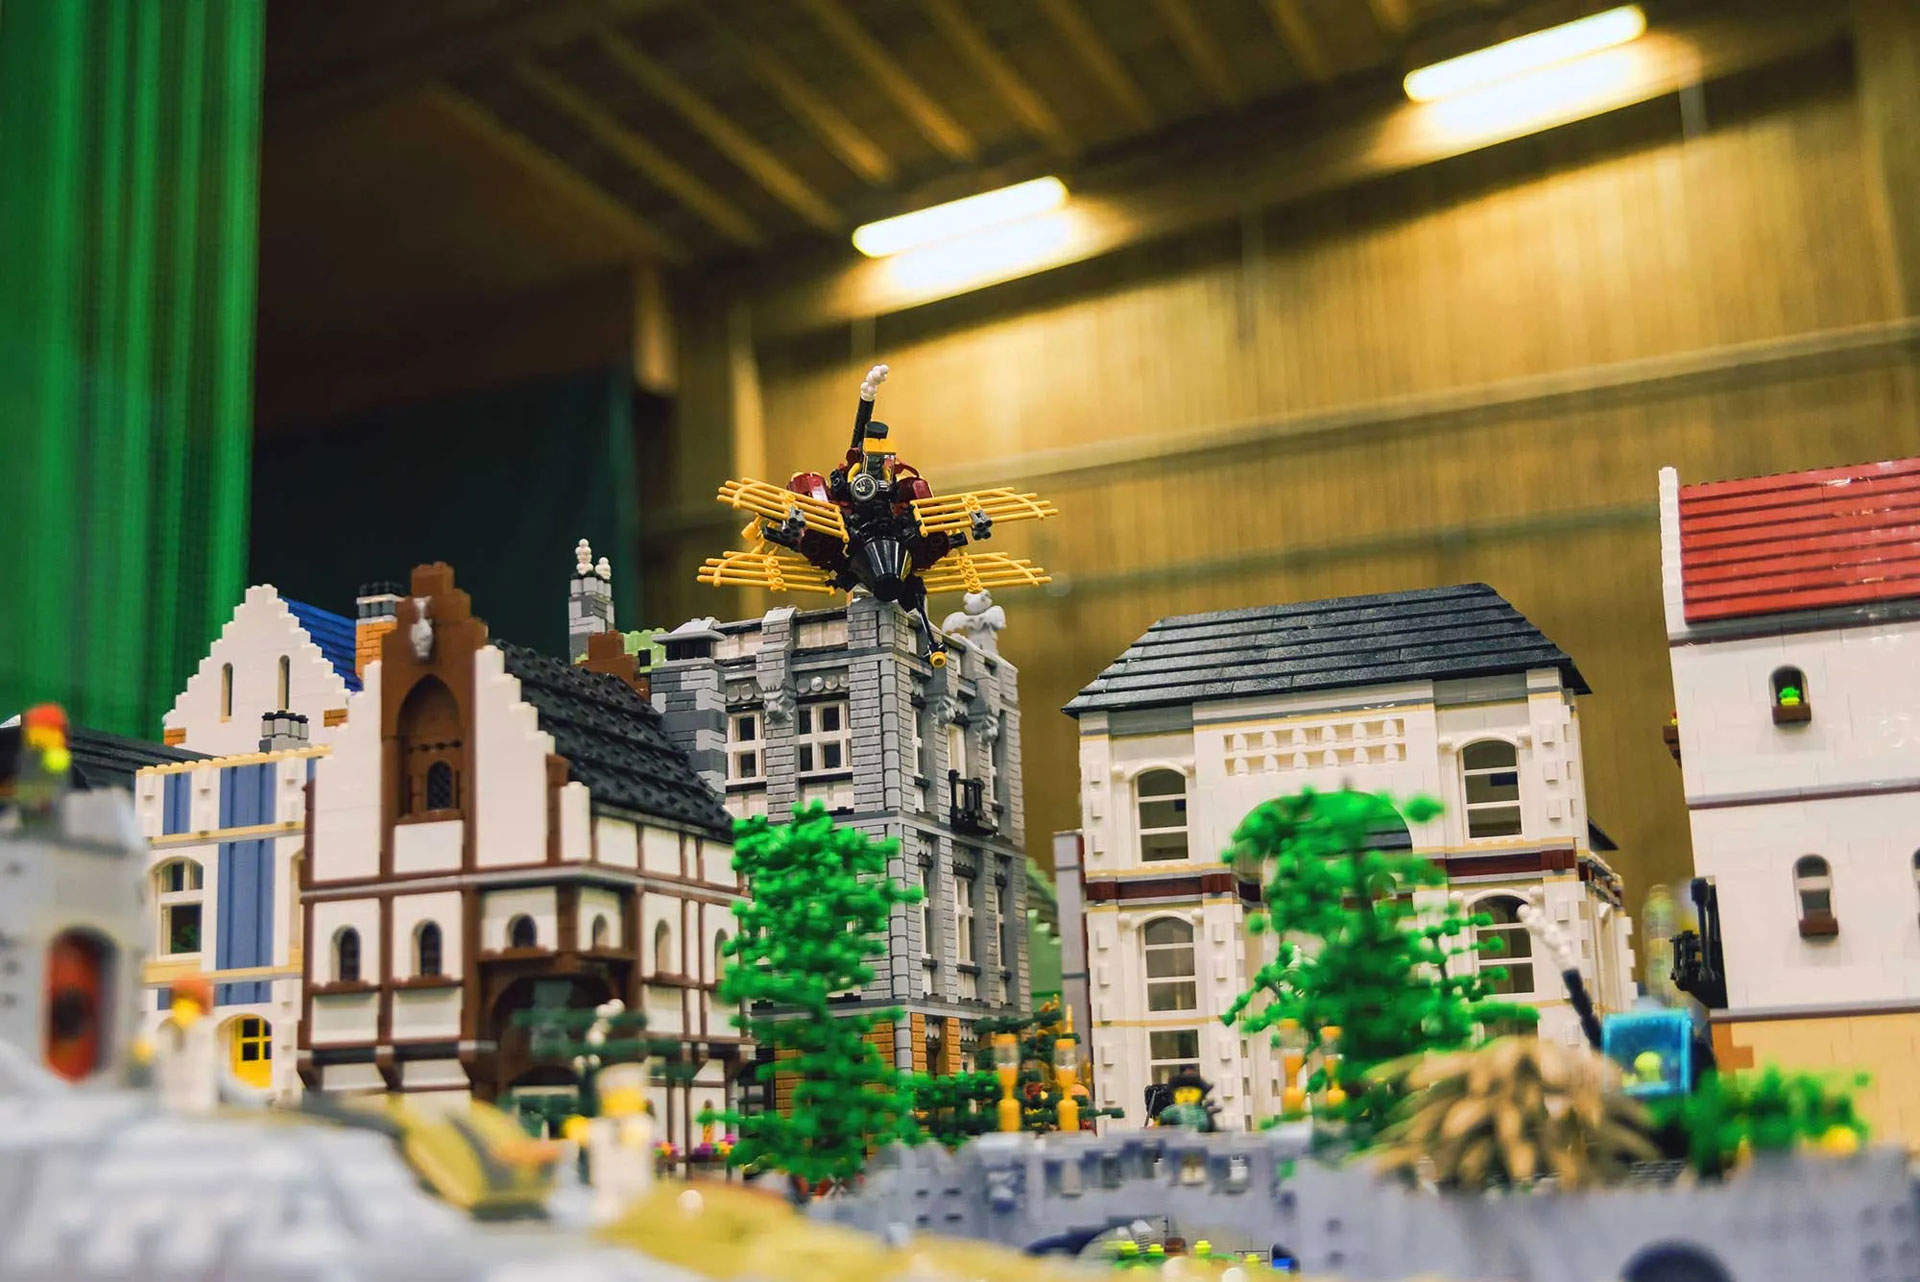 Link to event Pii Poo's Lego Building Event 2019